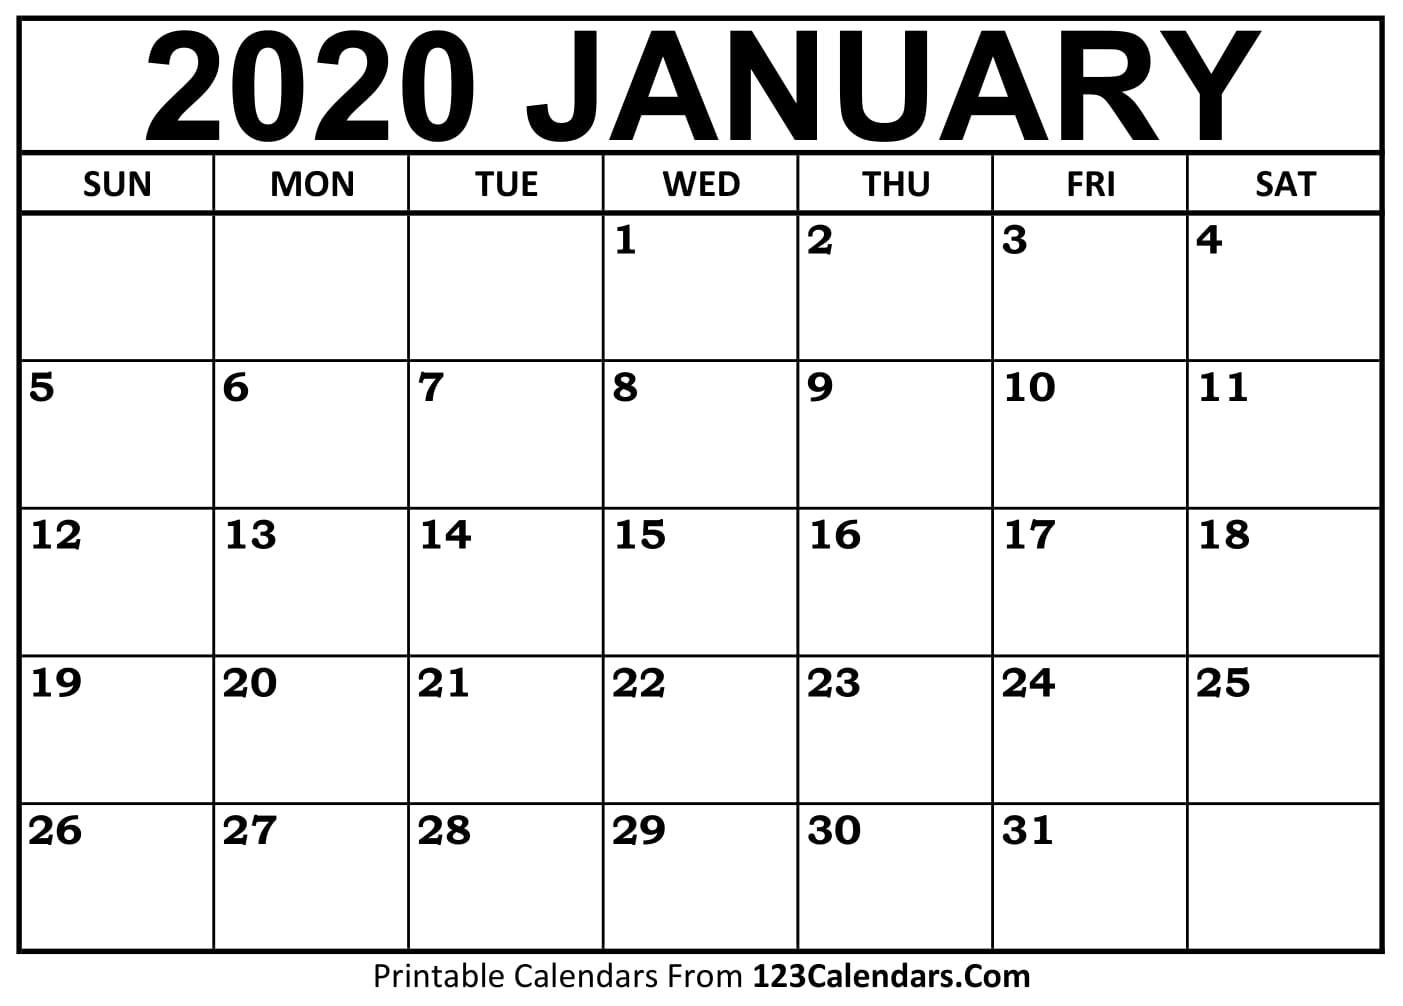 January 2020 Printable Calendar | 123Calendars for January 2020 Calendar 123Calendars